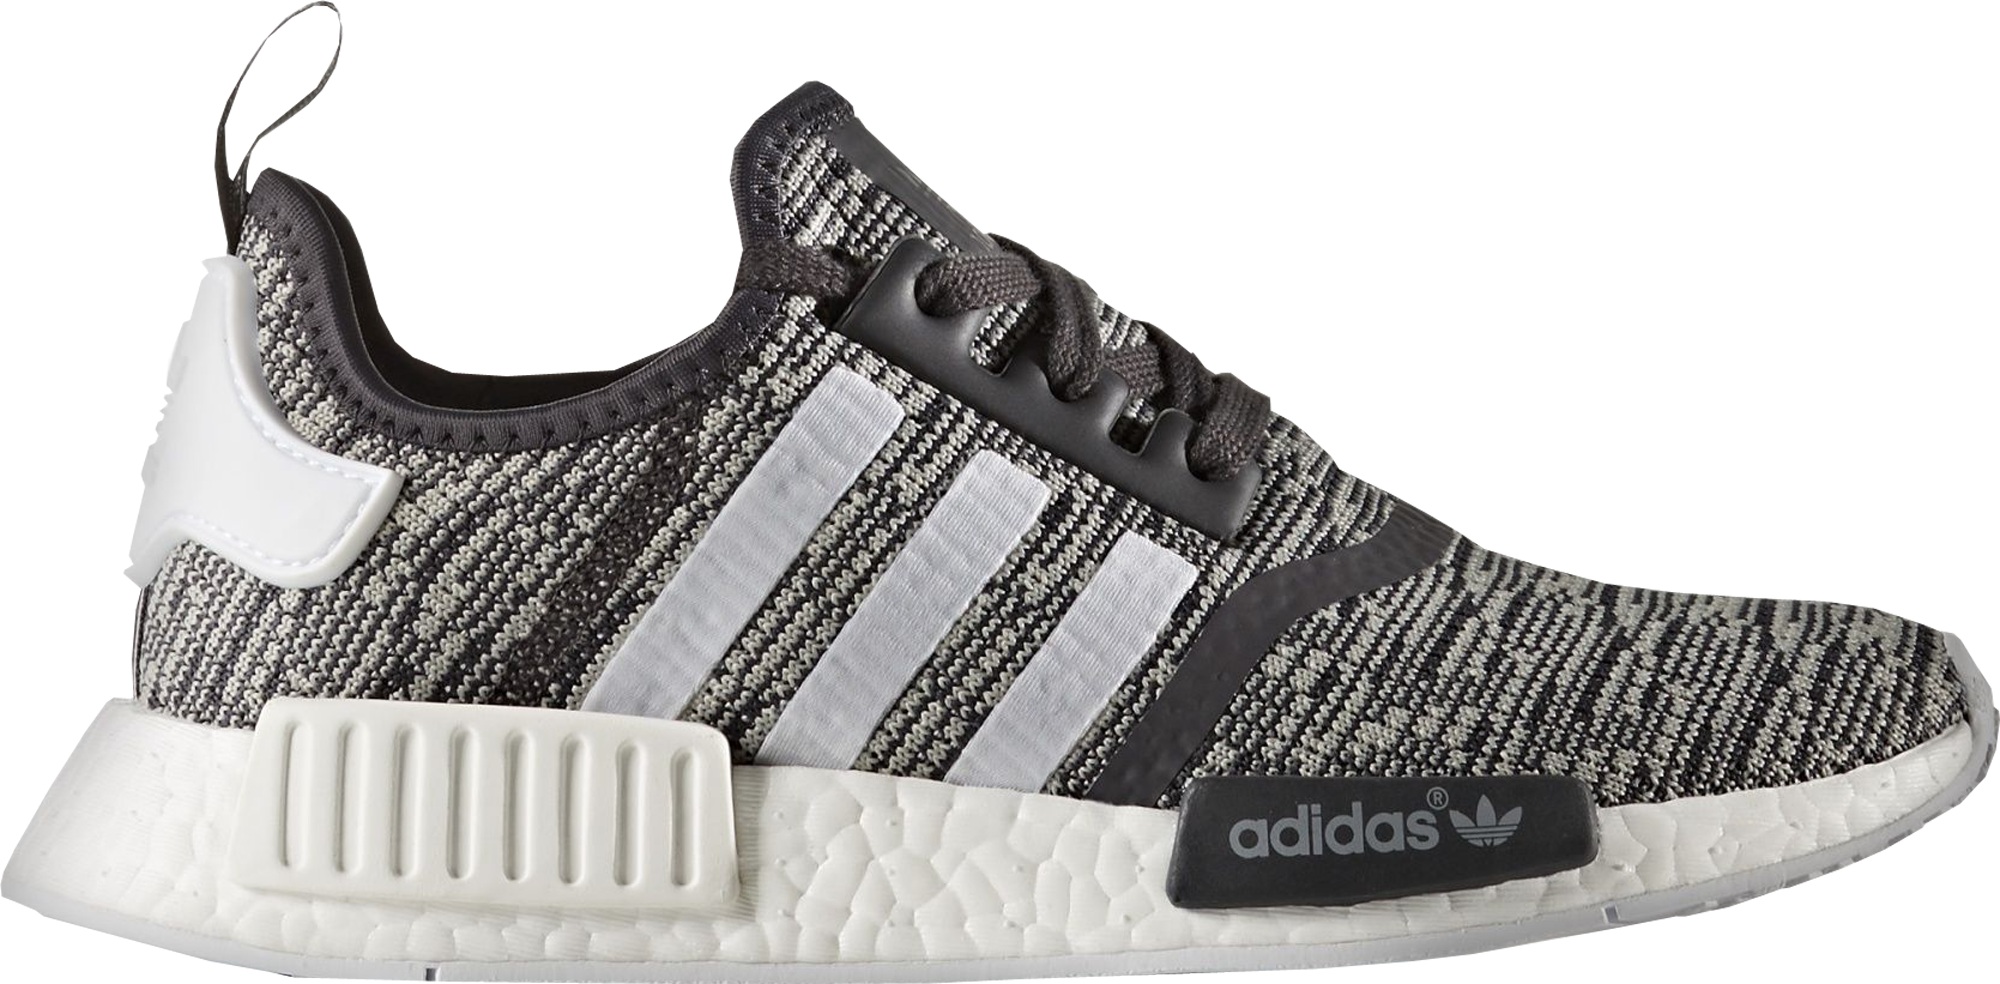 Adidas NMD R1 Glitch Gray Sneakers DS 10.5 vinted